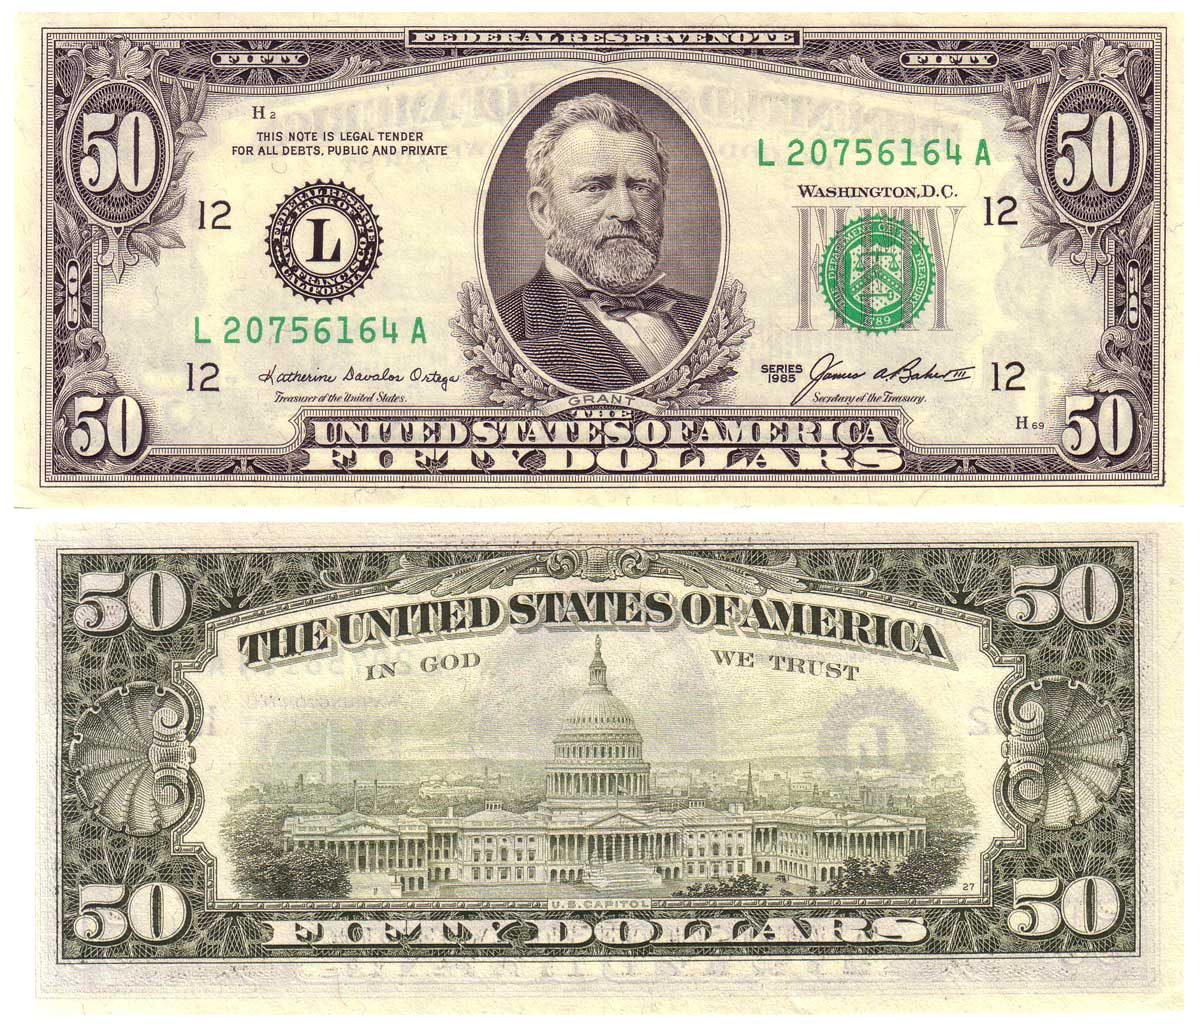 1977 100 dollar bill security features - 1977 100 Dollar Bill Security Features 19